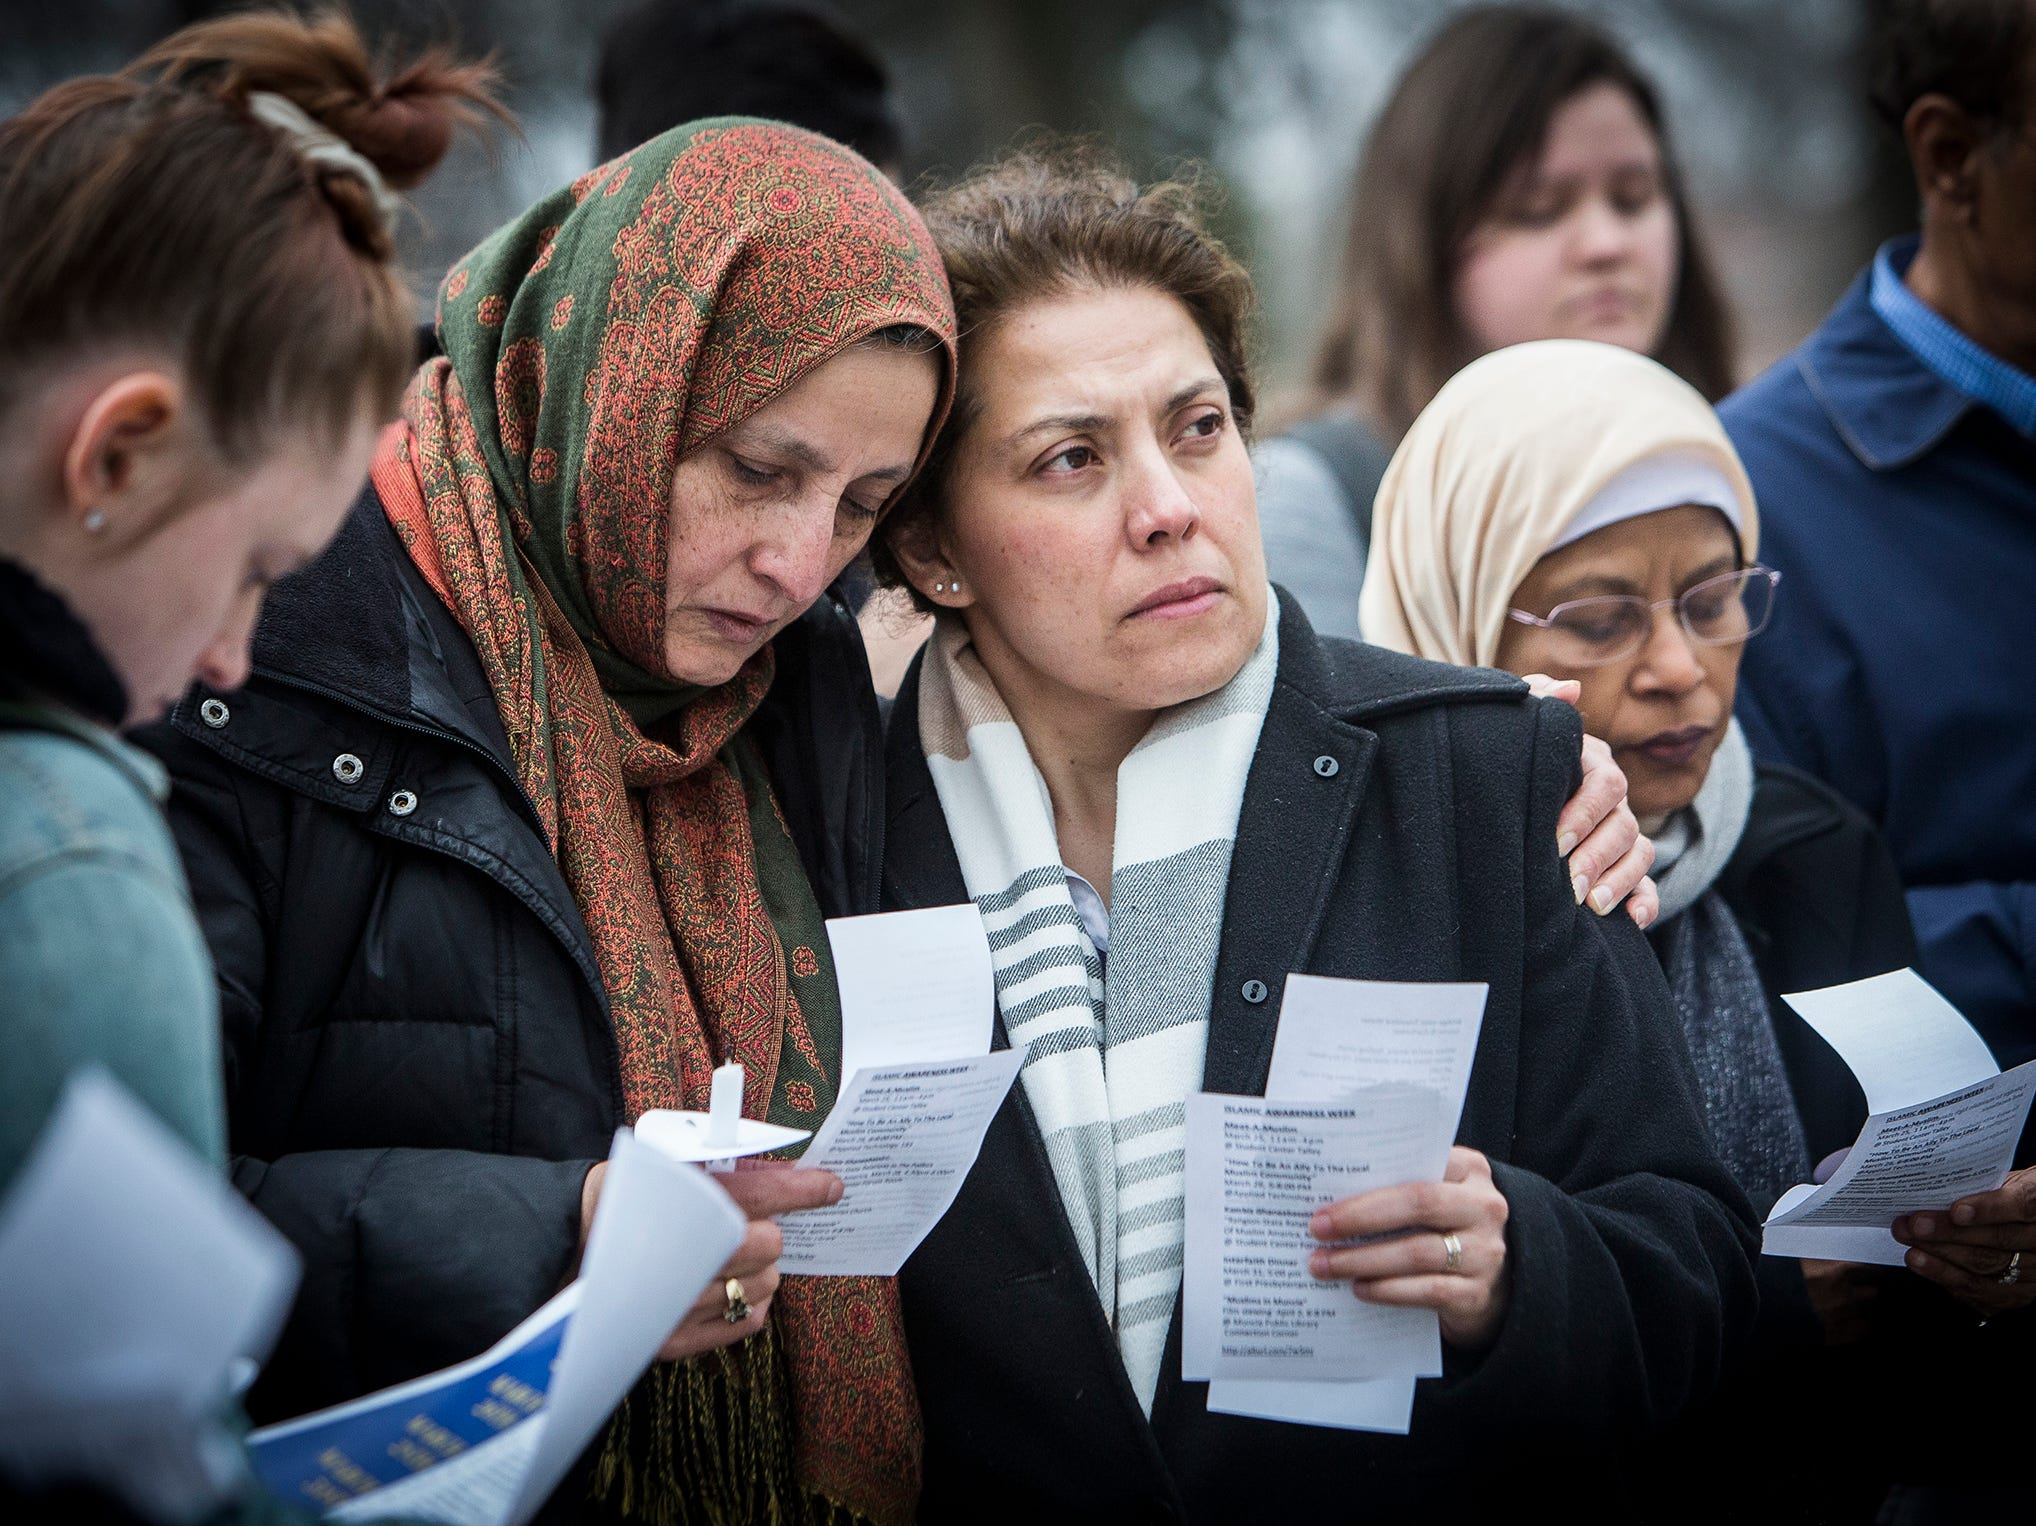 A small crowd gathered for a vigil honoring the victims of the Christchurch mosque shootings near Ball State's Beneficence statue Thursday afternoon. The event was co-sponsored by the Office of the President, the Office of Inclusive Excellence, and the Muslim Student Association.